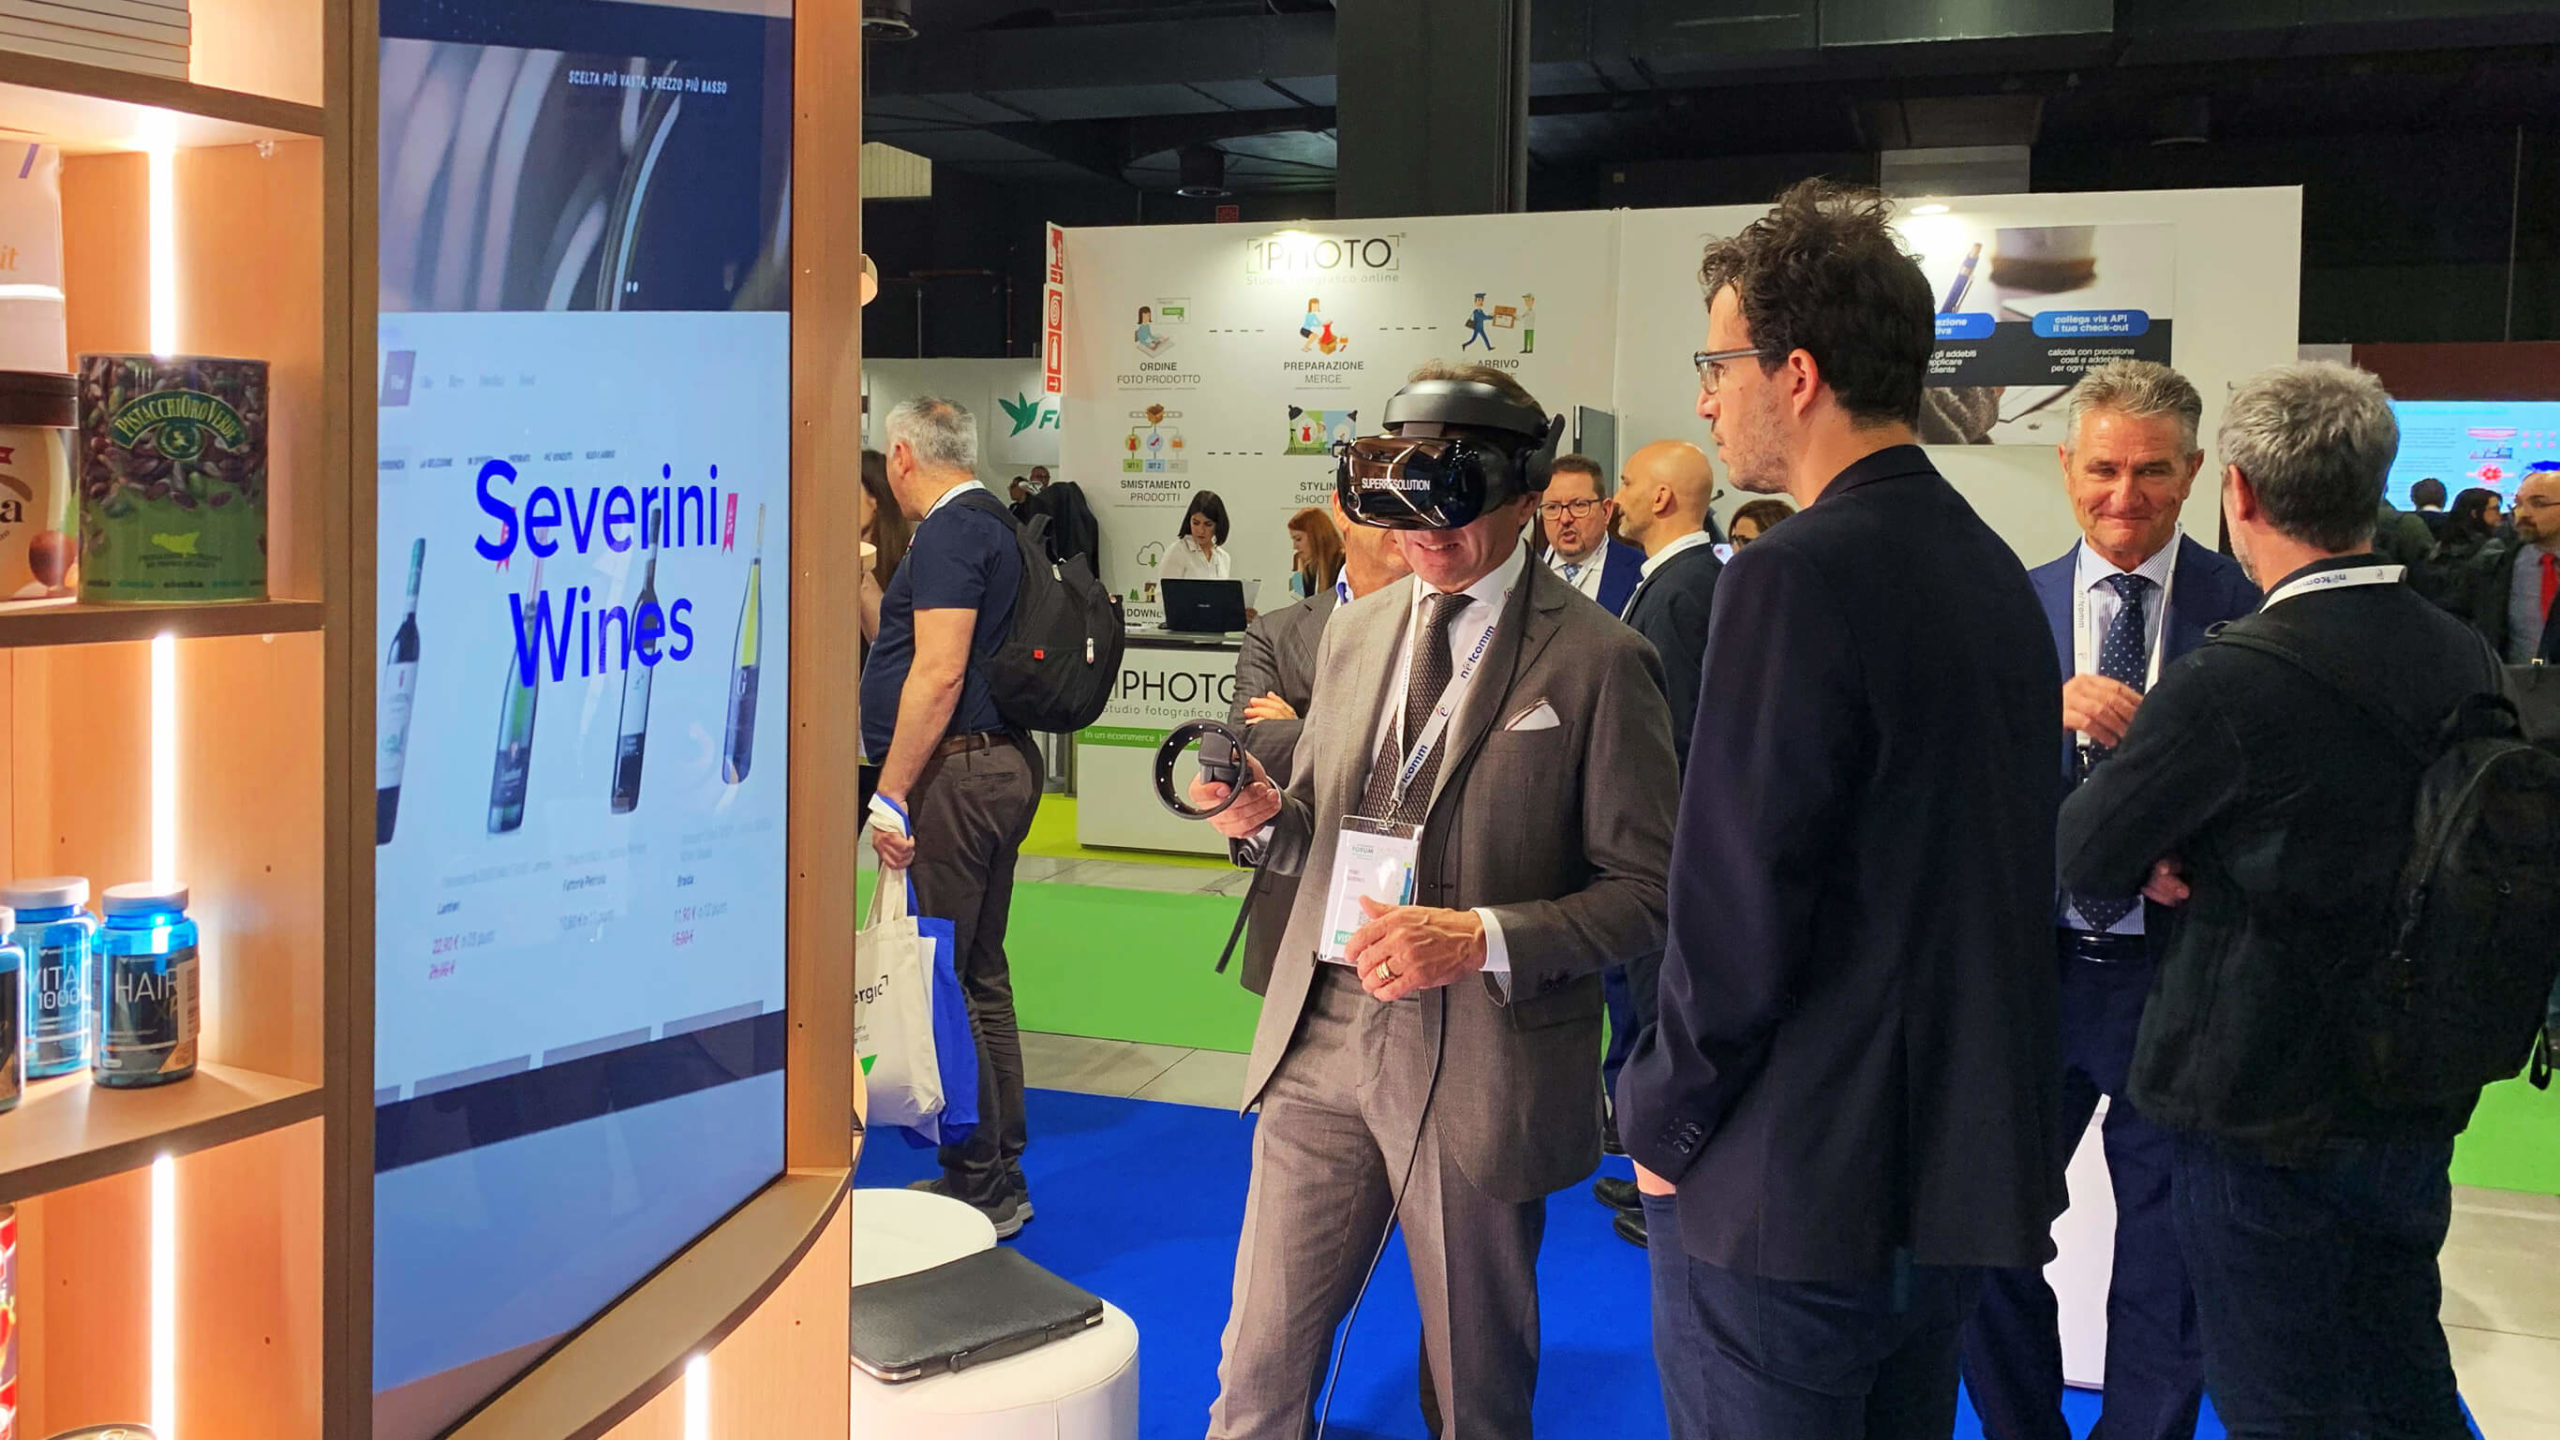 Evento VarGroup al Netcomm 2019 con Superresolution